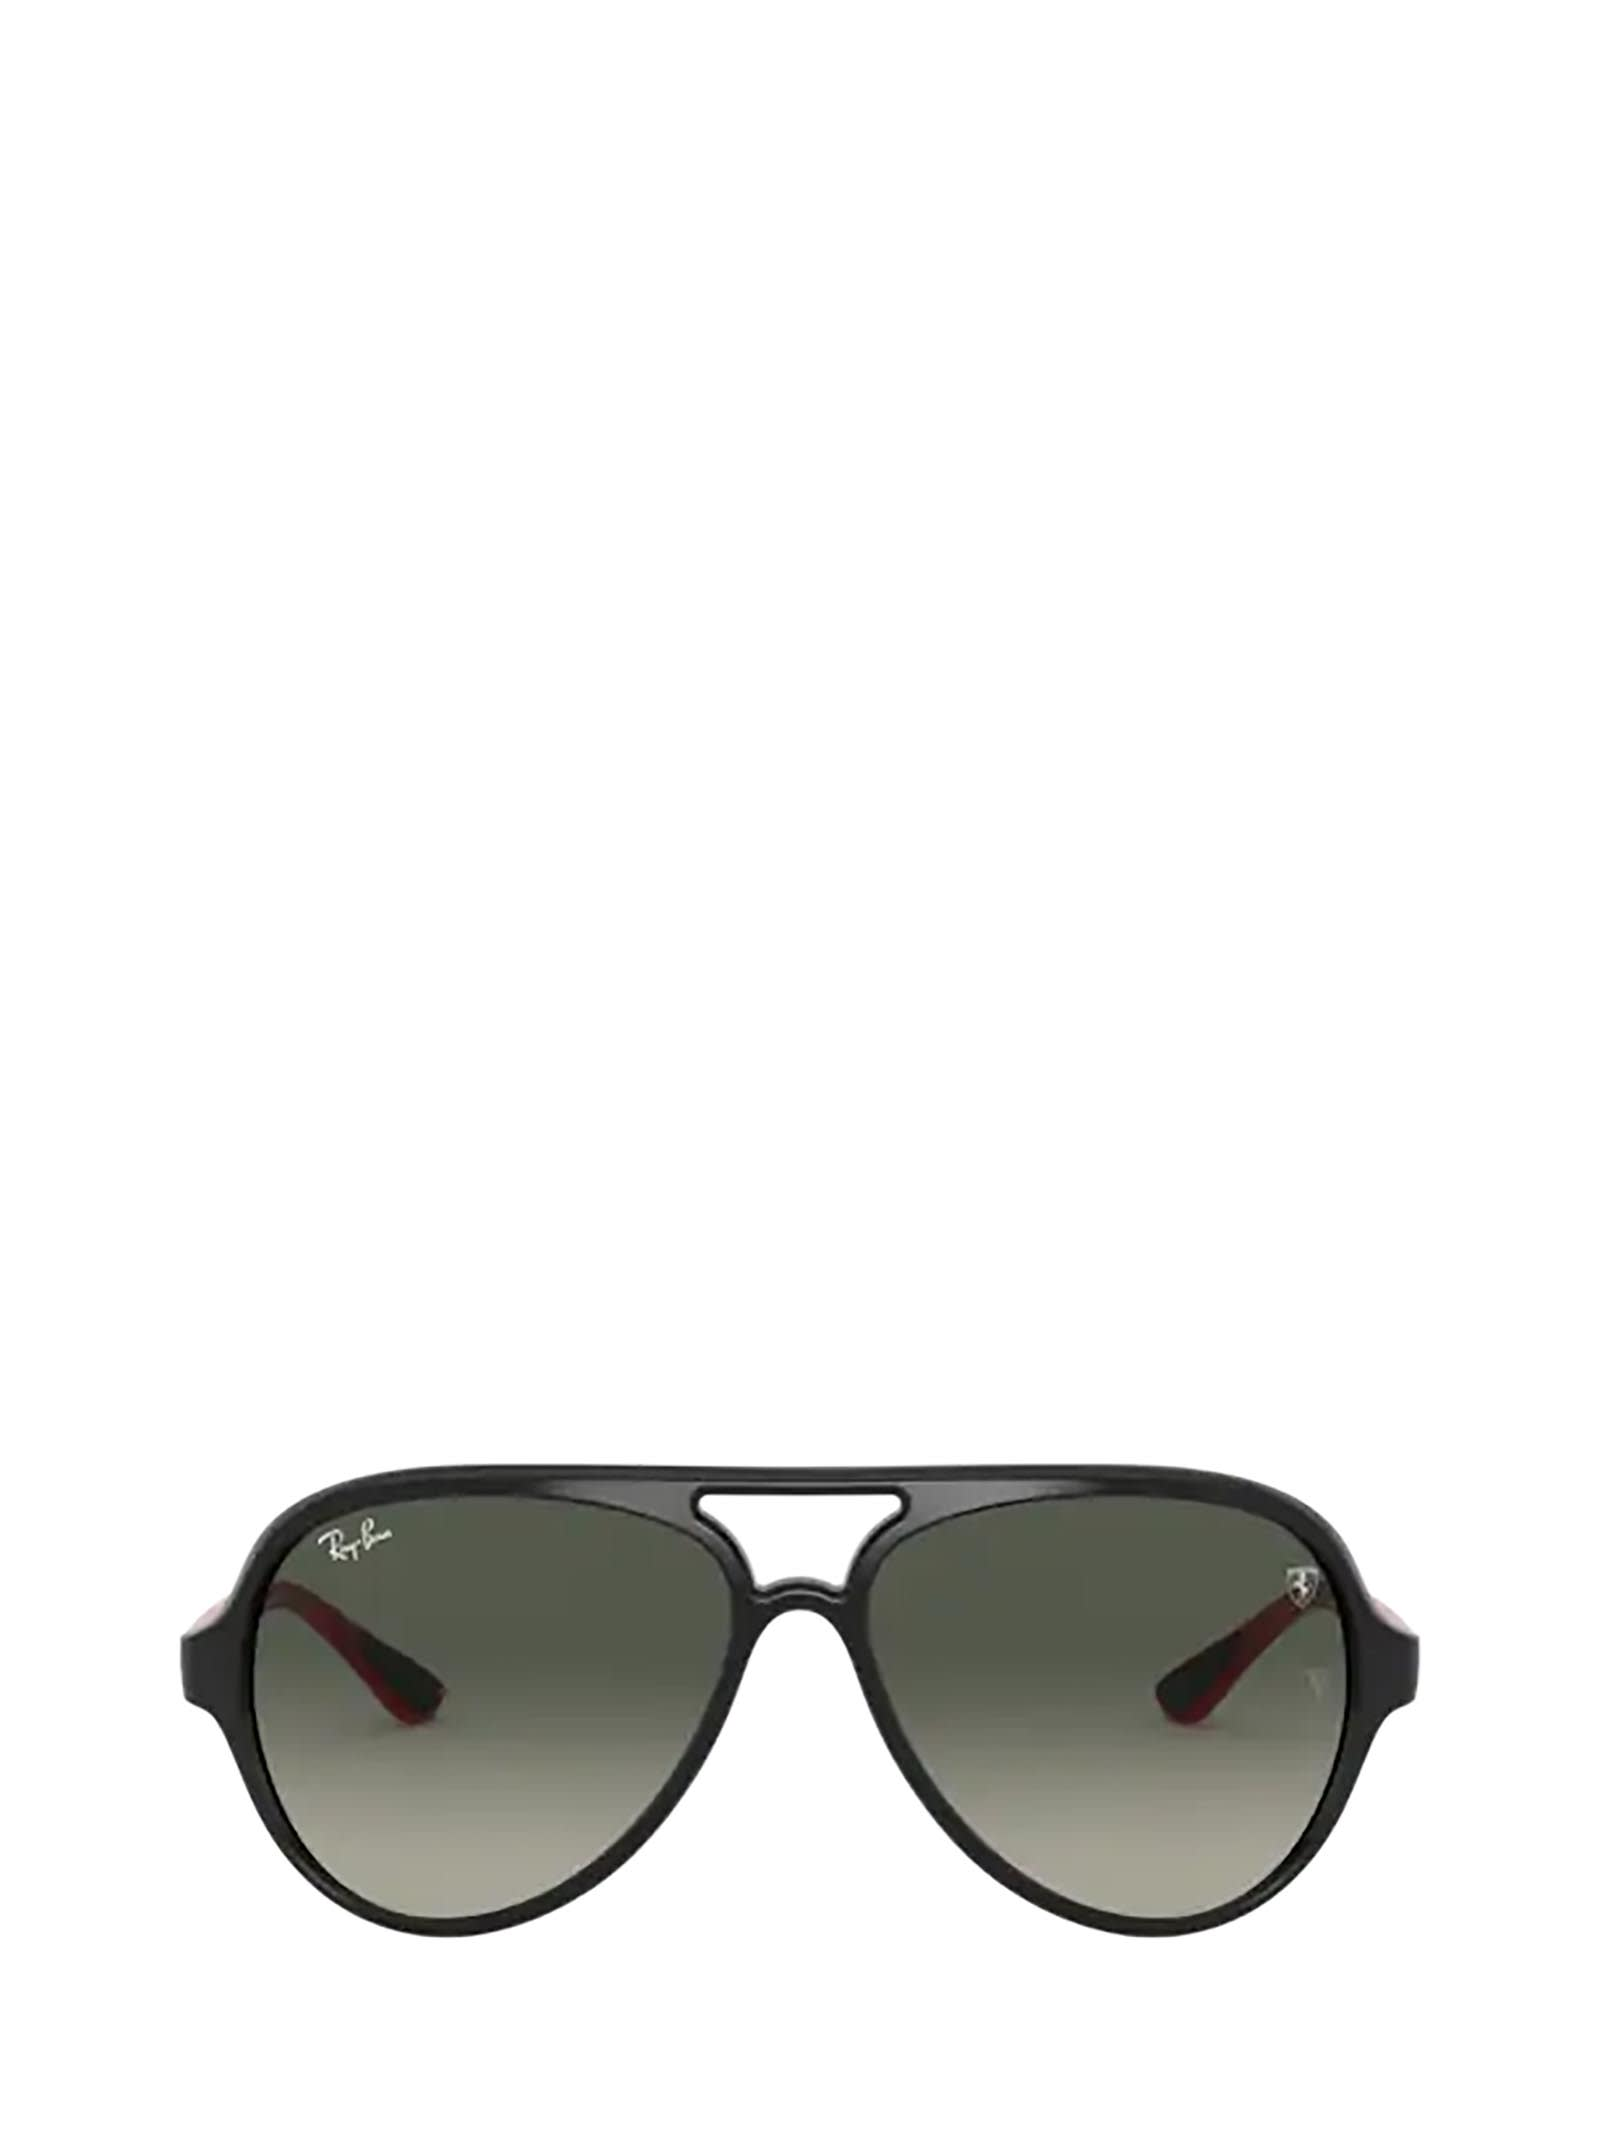 Ray-Ban Ray-ban Rb4125m Black Sunglasses